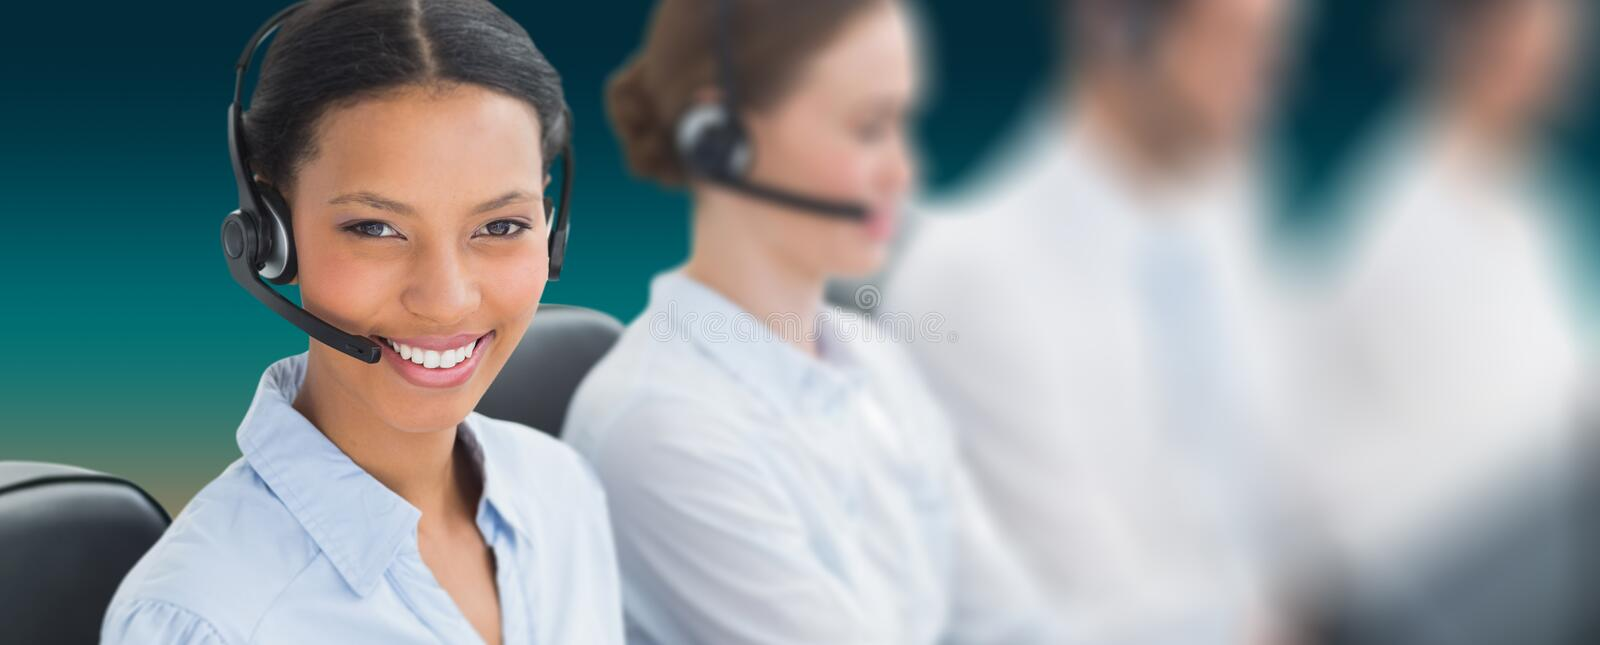 Composite image of business people with headsets using computers royalty free stock photography